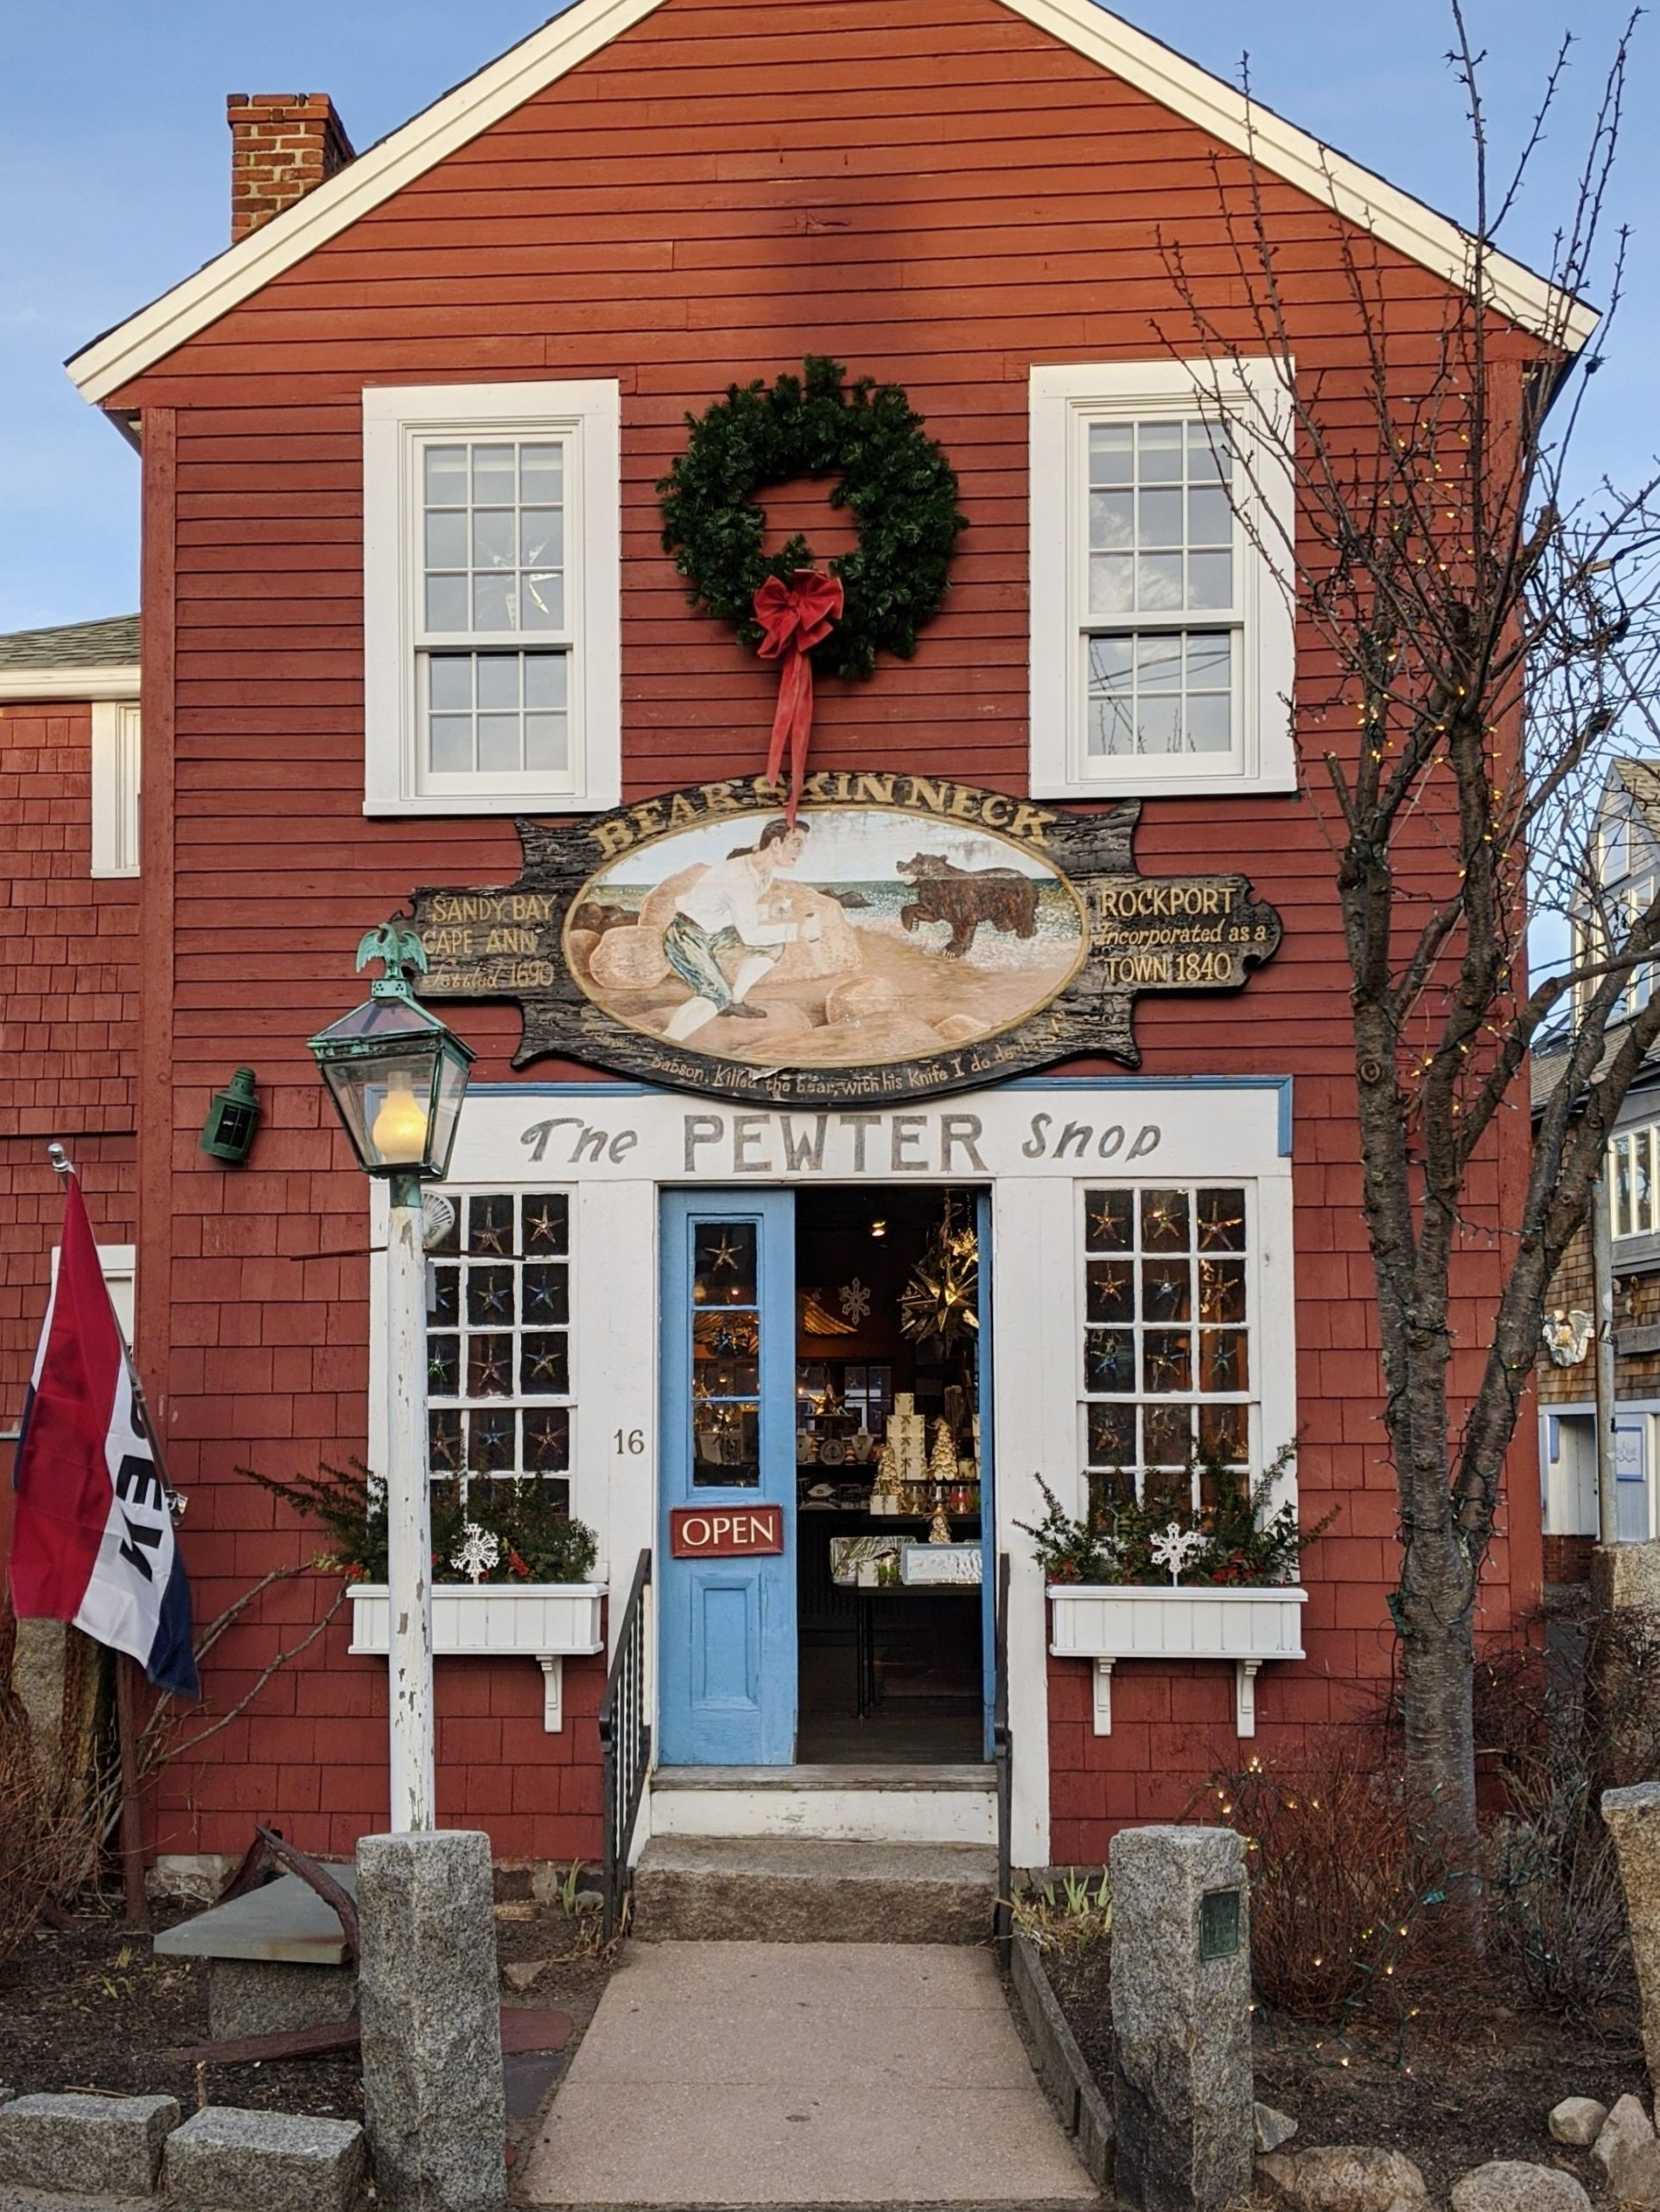 The insta-famous Pewter Store in Rockport, MA